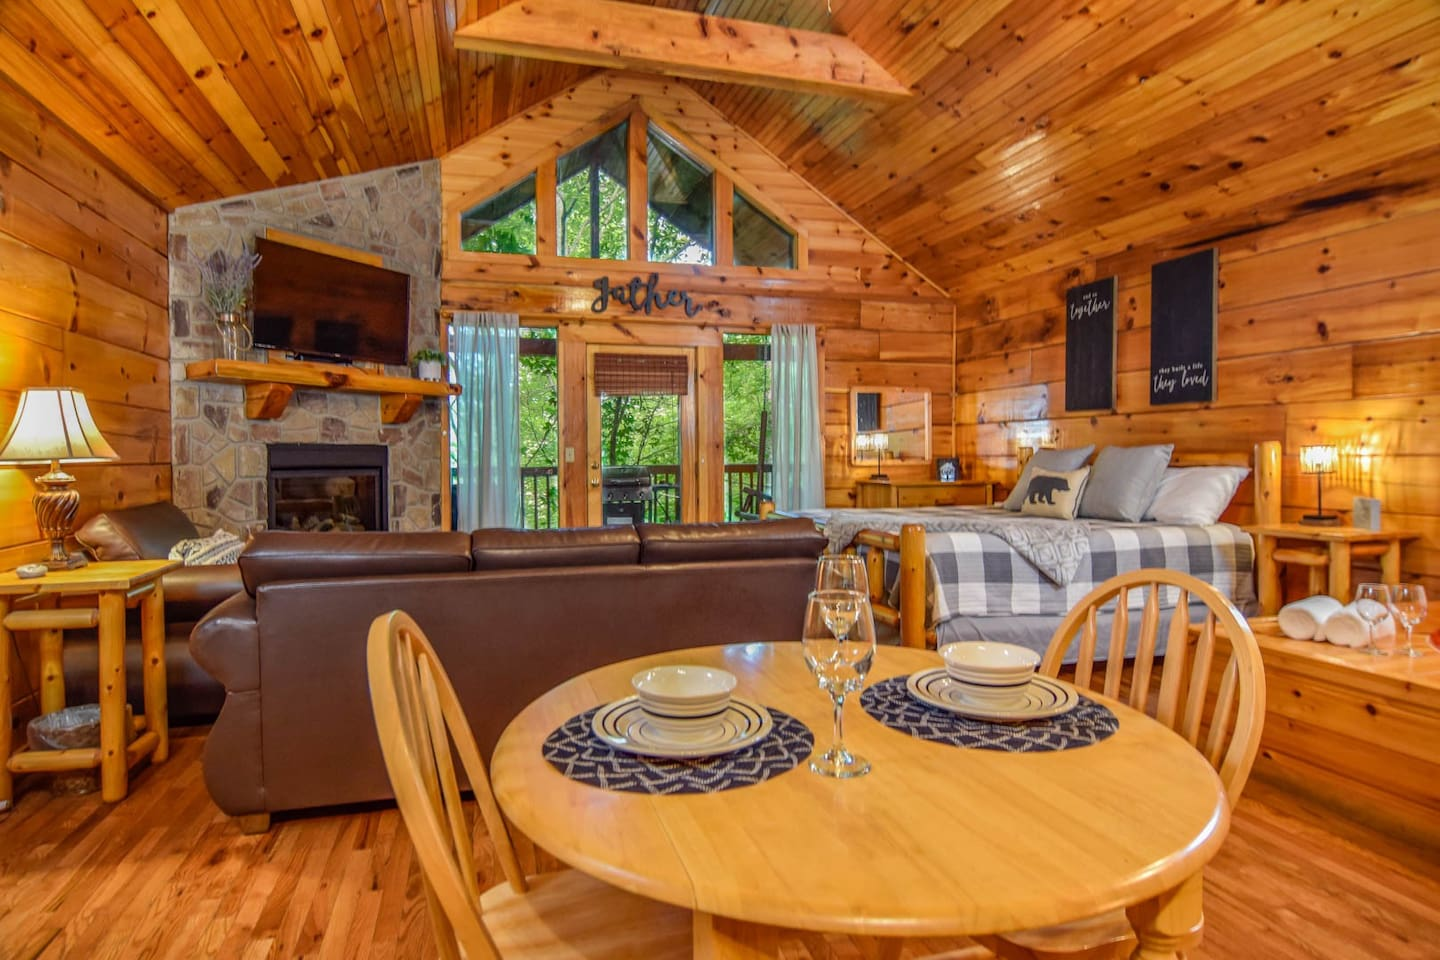 Best Smoky Mountain Airbnb for Two